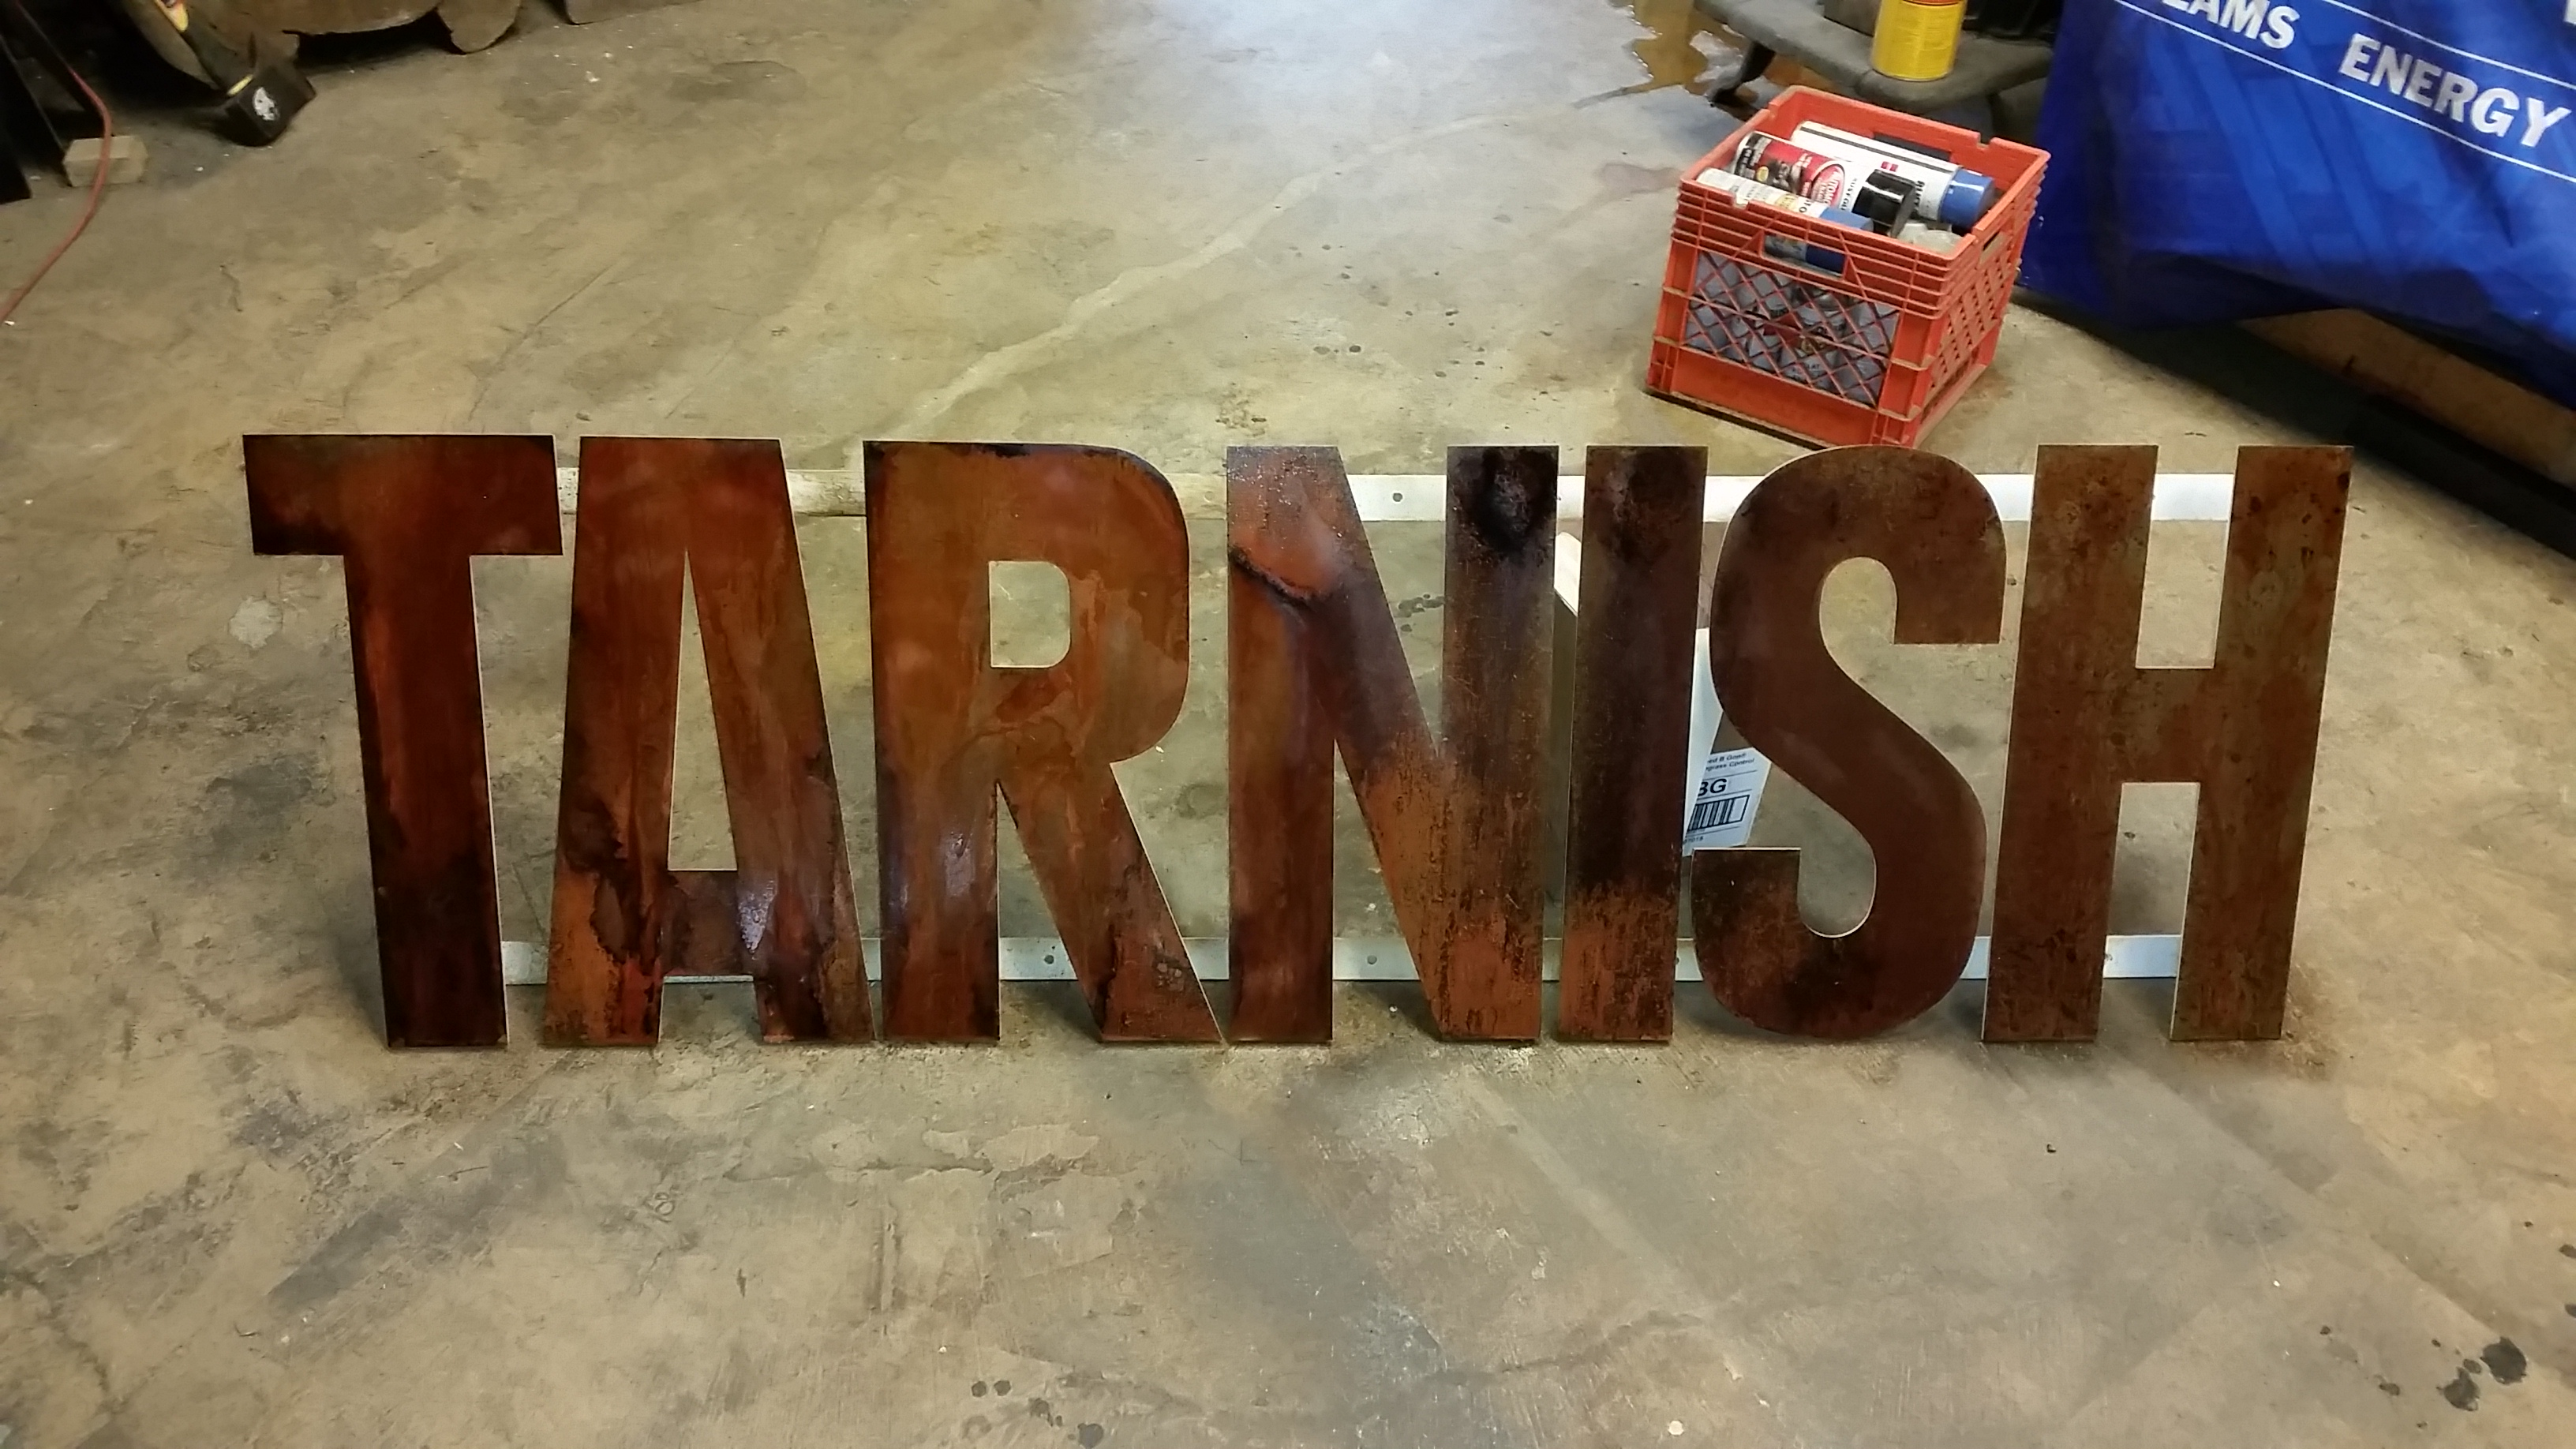 Tarnish sign